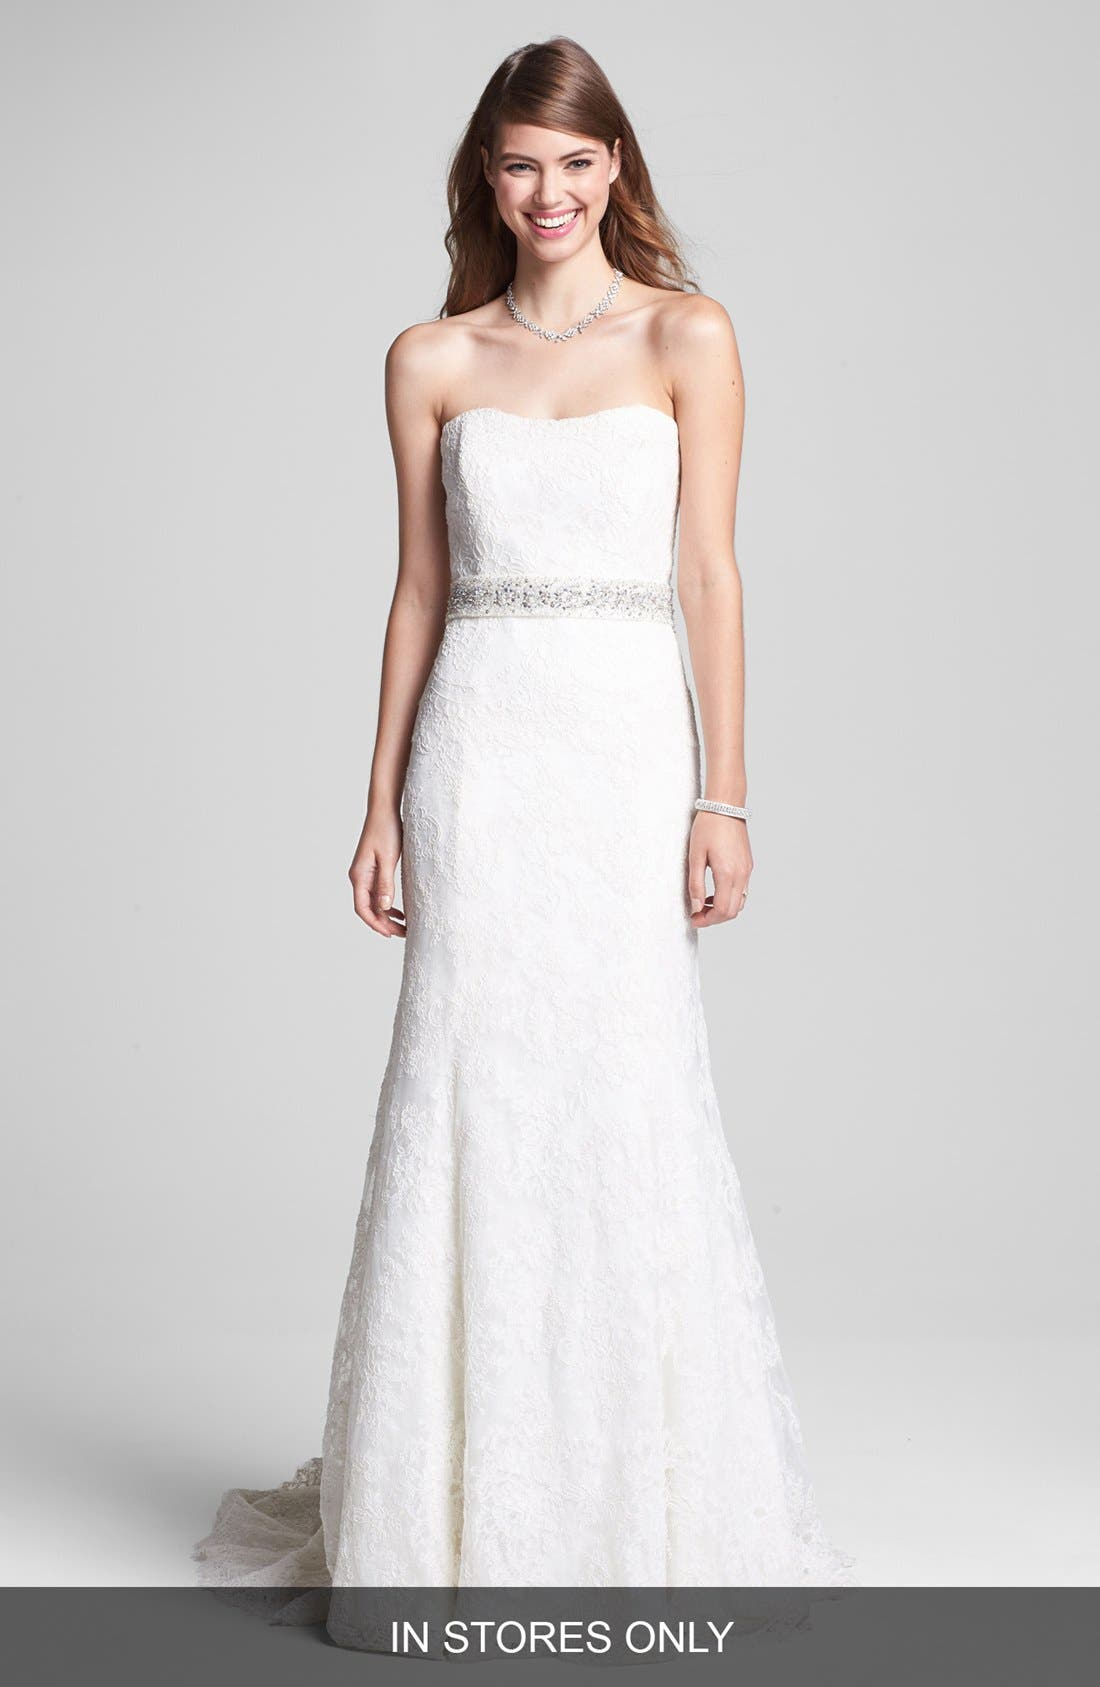 monique lhuillier wedding dress bliss lhuillier strapless lace wedding dress with 5990